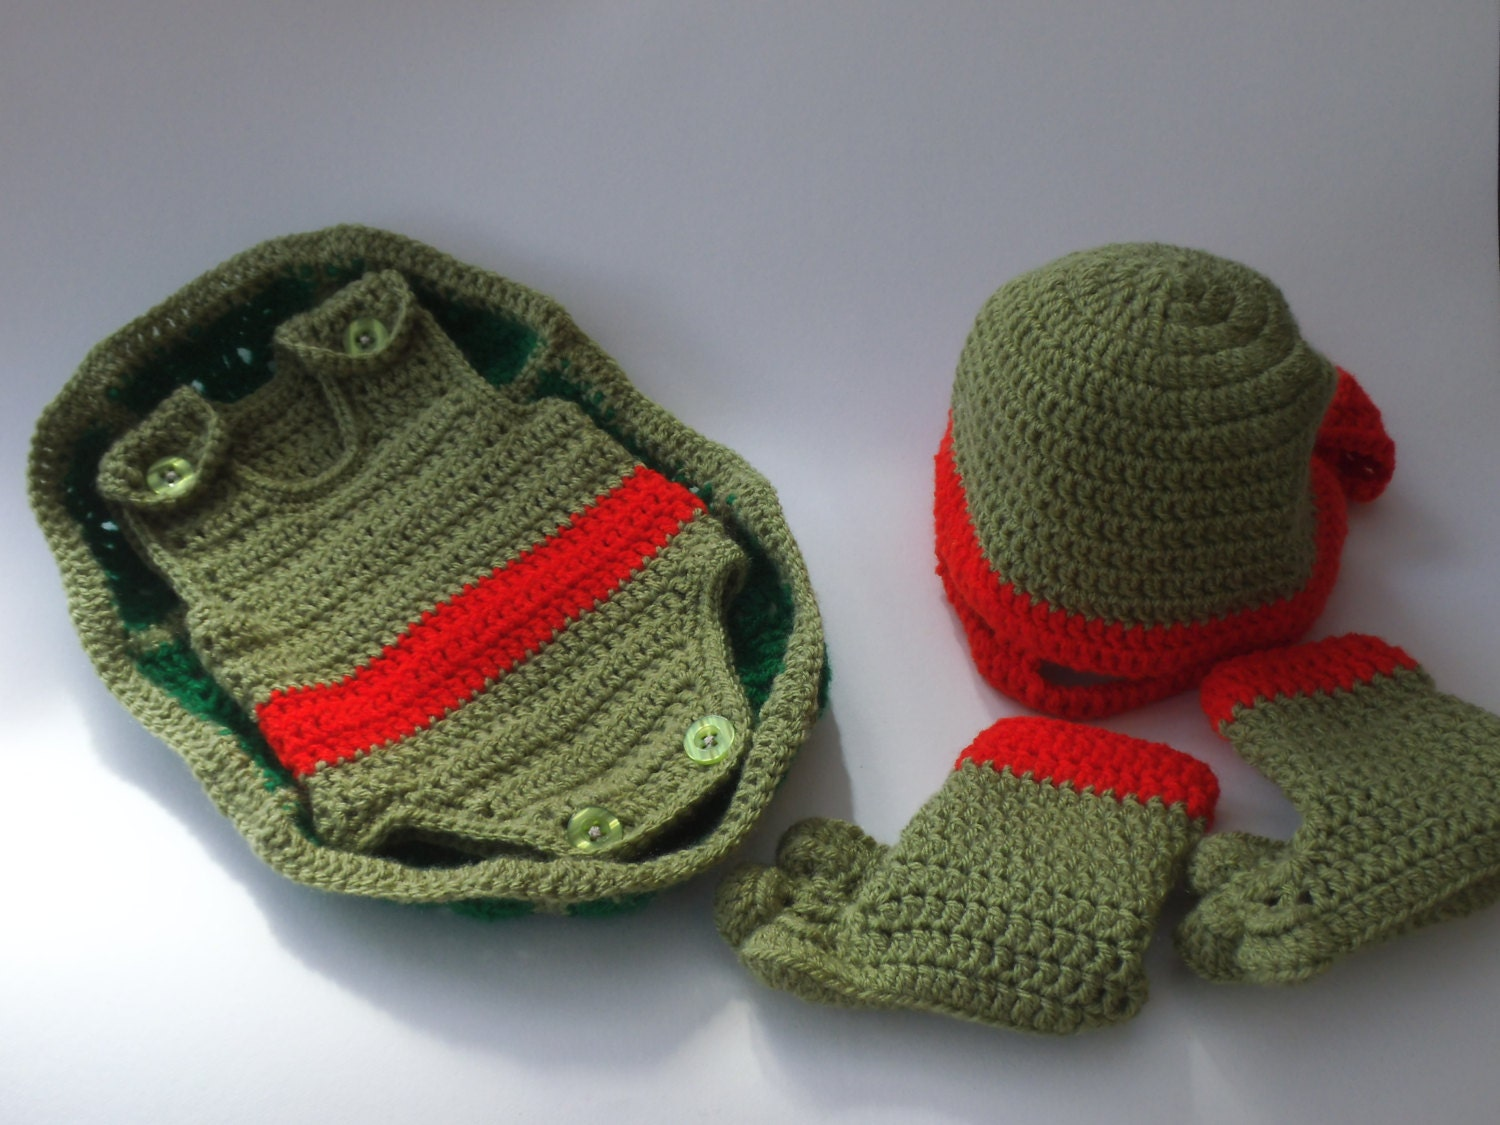 Pattern to Crochet Baby a Teenage Mutant Ninja Turtle Outfit